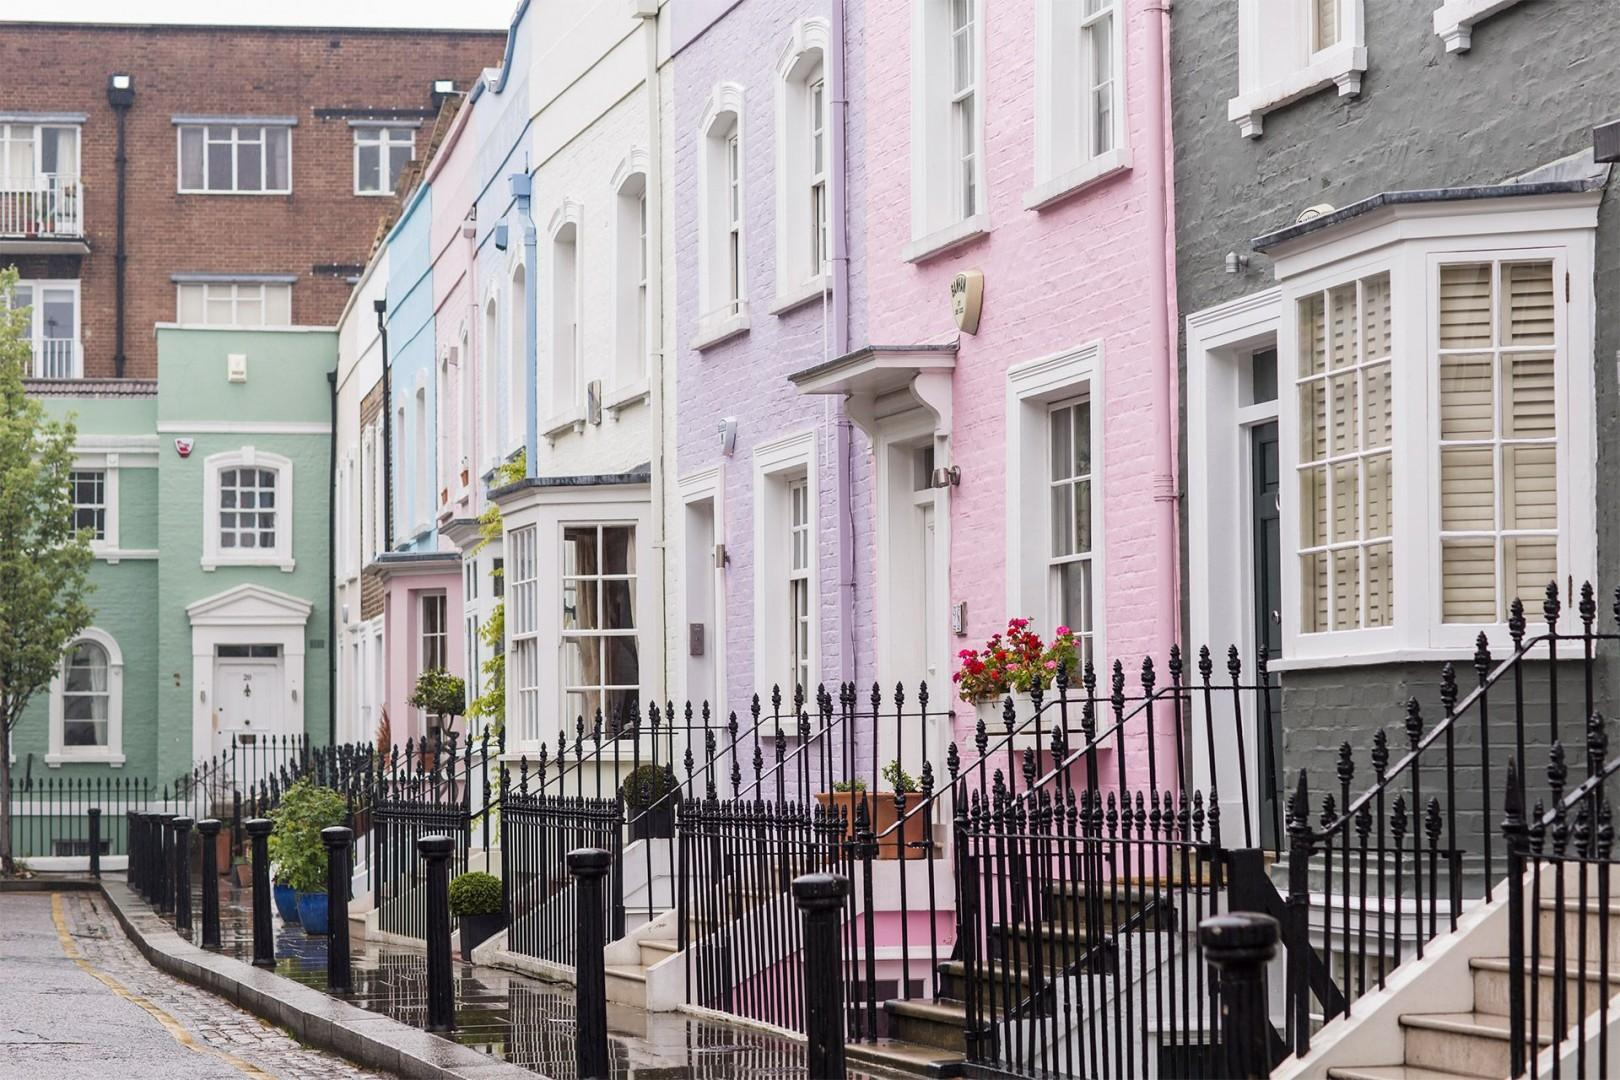 CMS-09-(The Walton is set in South Kensington near Chelsea and Knightsbridge)-957570754-1508849501-chelsea-colorful-buildings